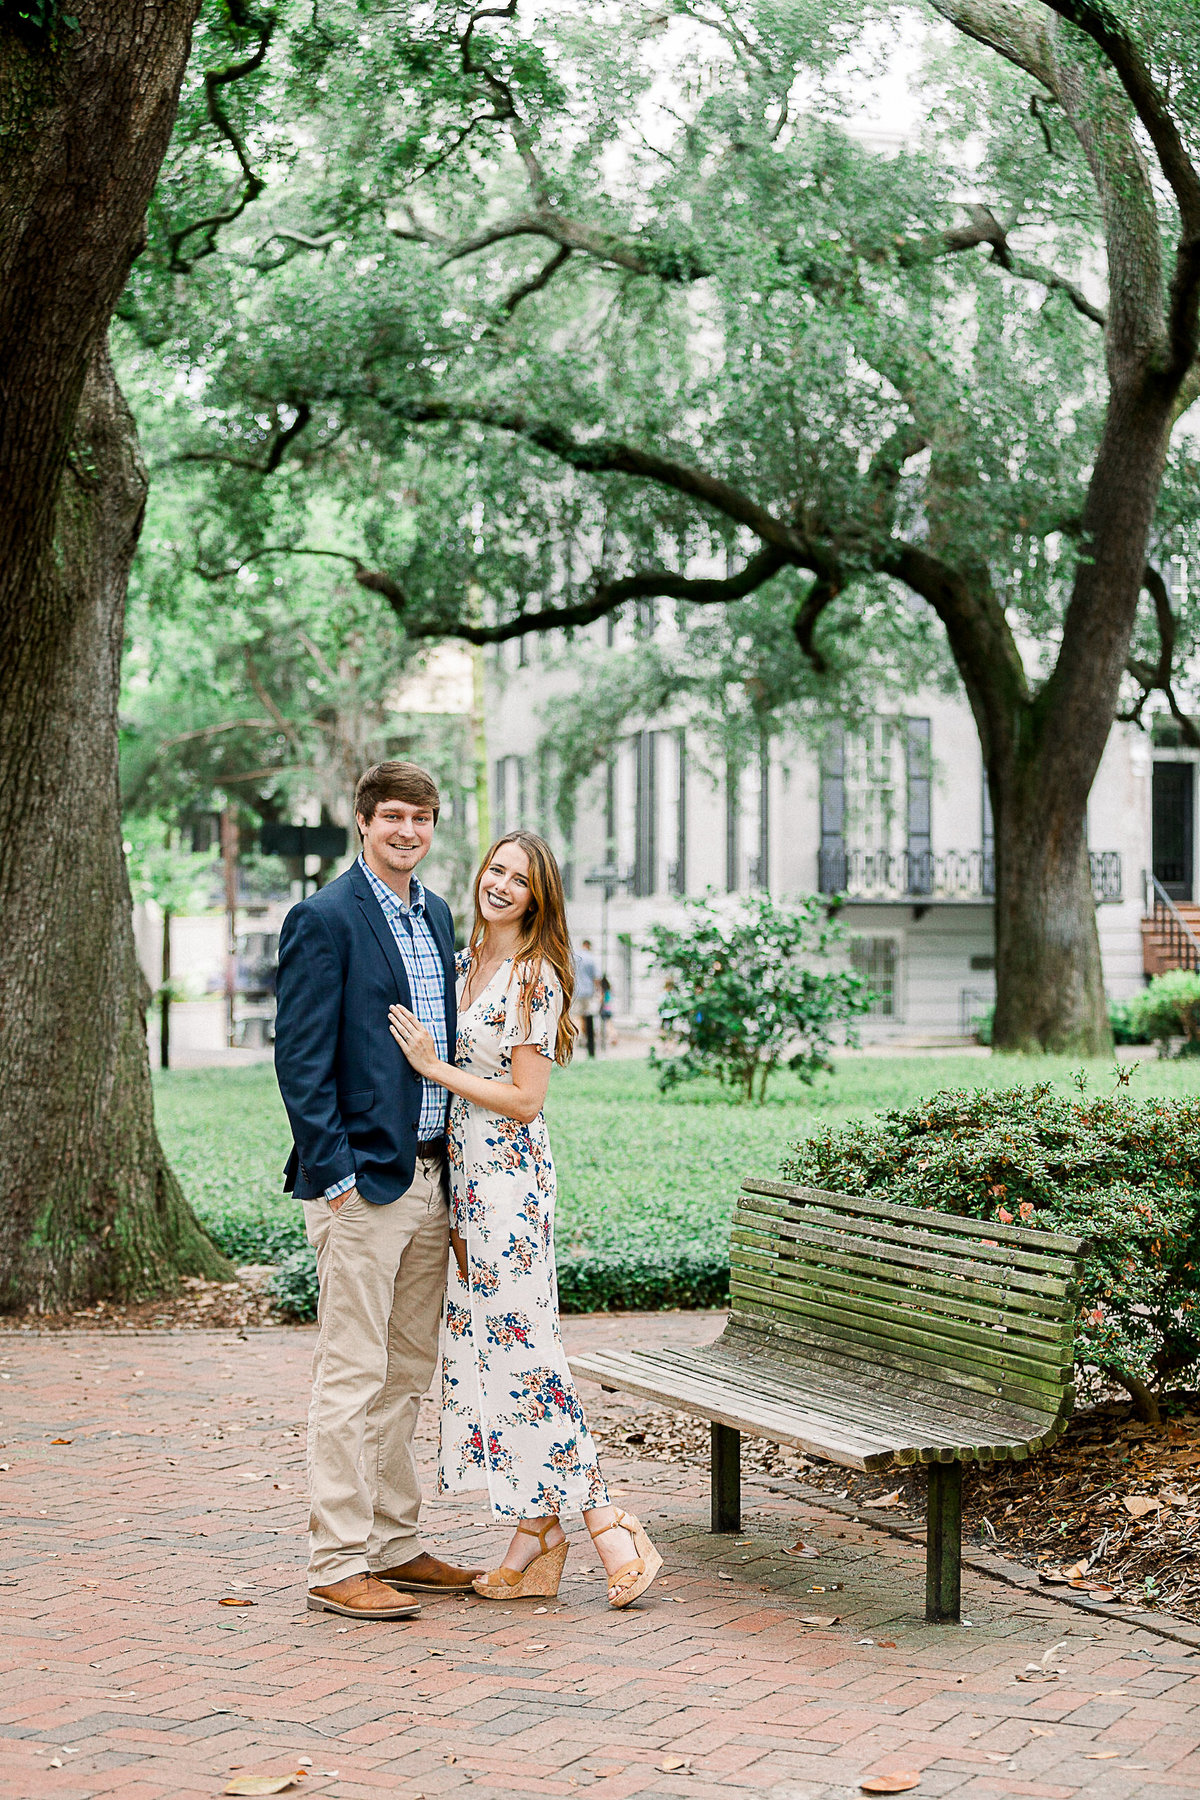 Lizzie Baker Photo _ Atlanta Engagement Photographer _ Atlanta Wedding Photographer _ Biltmore Wedding Photographer _ Foxhall Wedding Photographer _ Yew Dell Wedding49